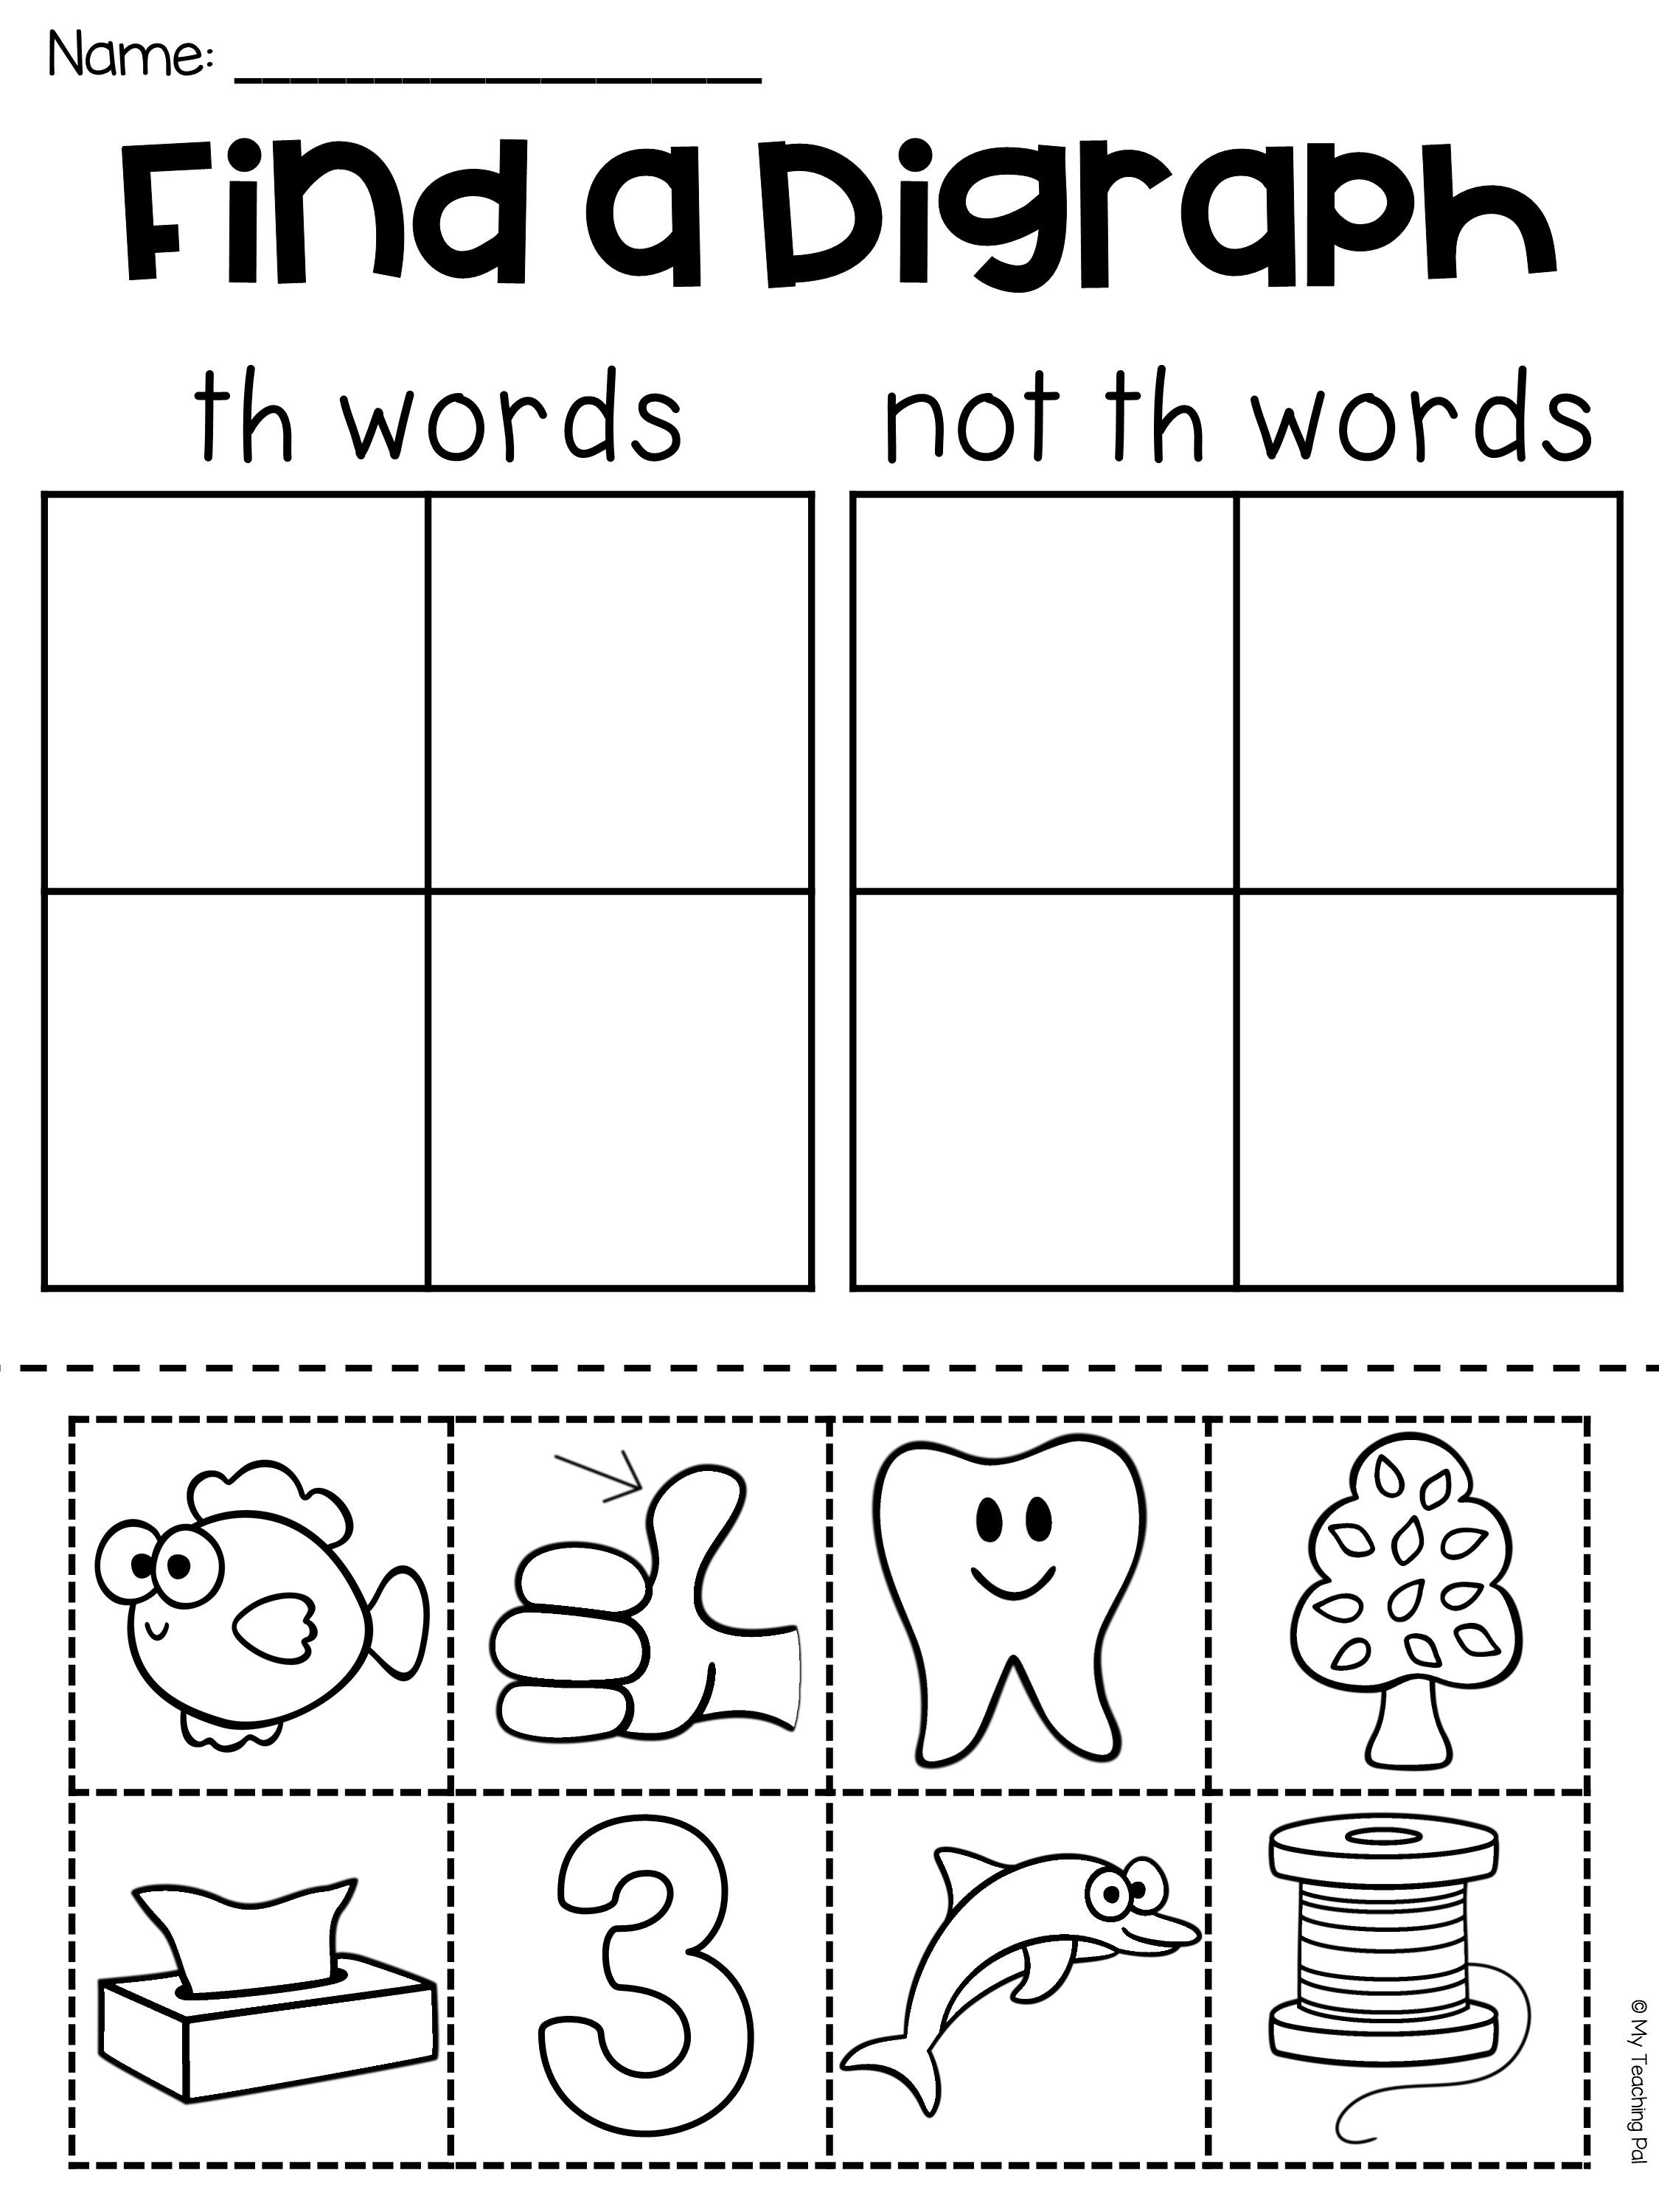 Kindergarten Cvc Worksheet Packet My Tpt Store T